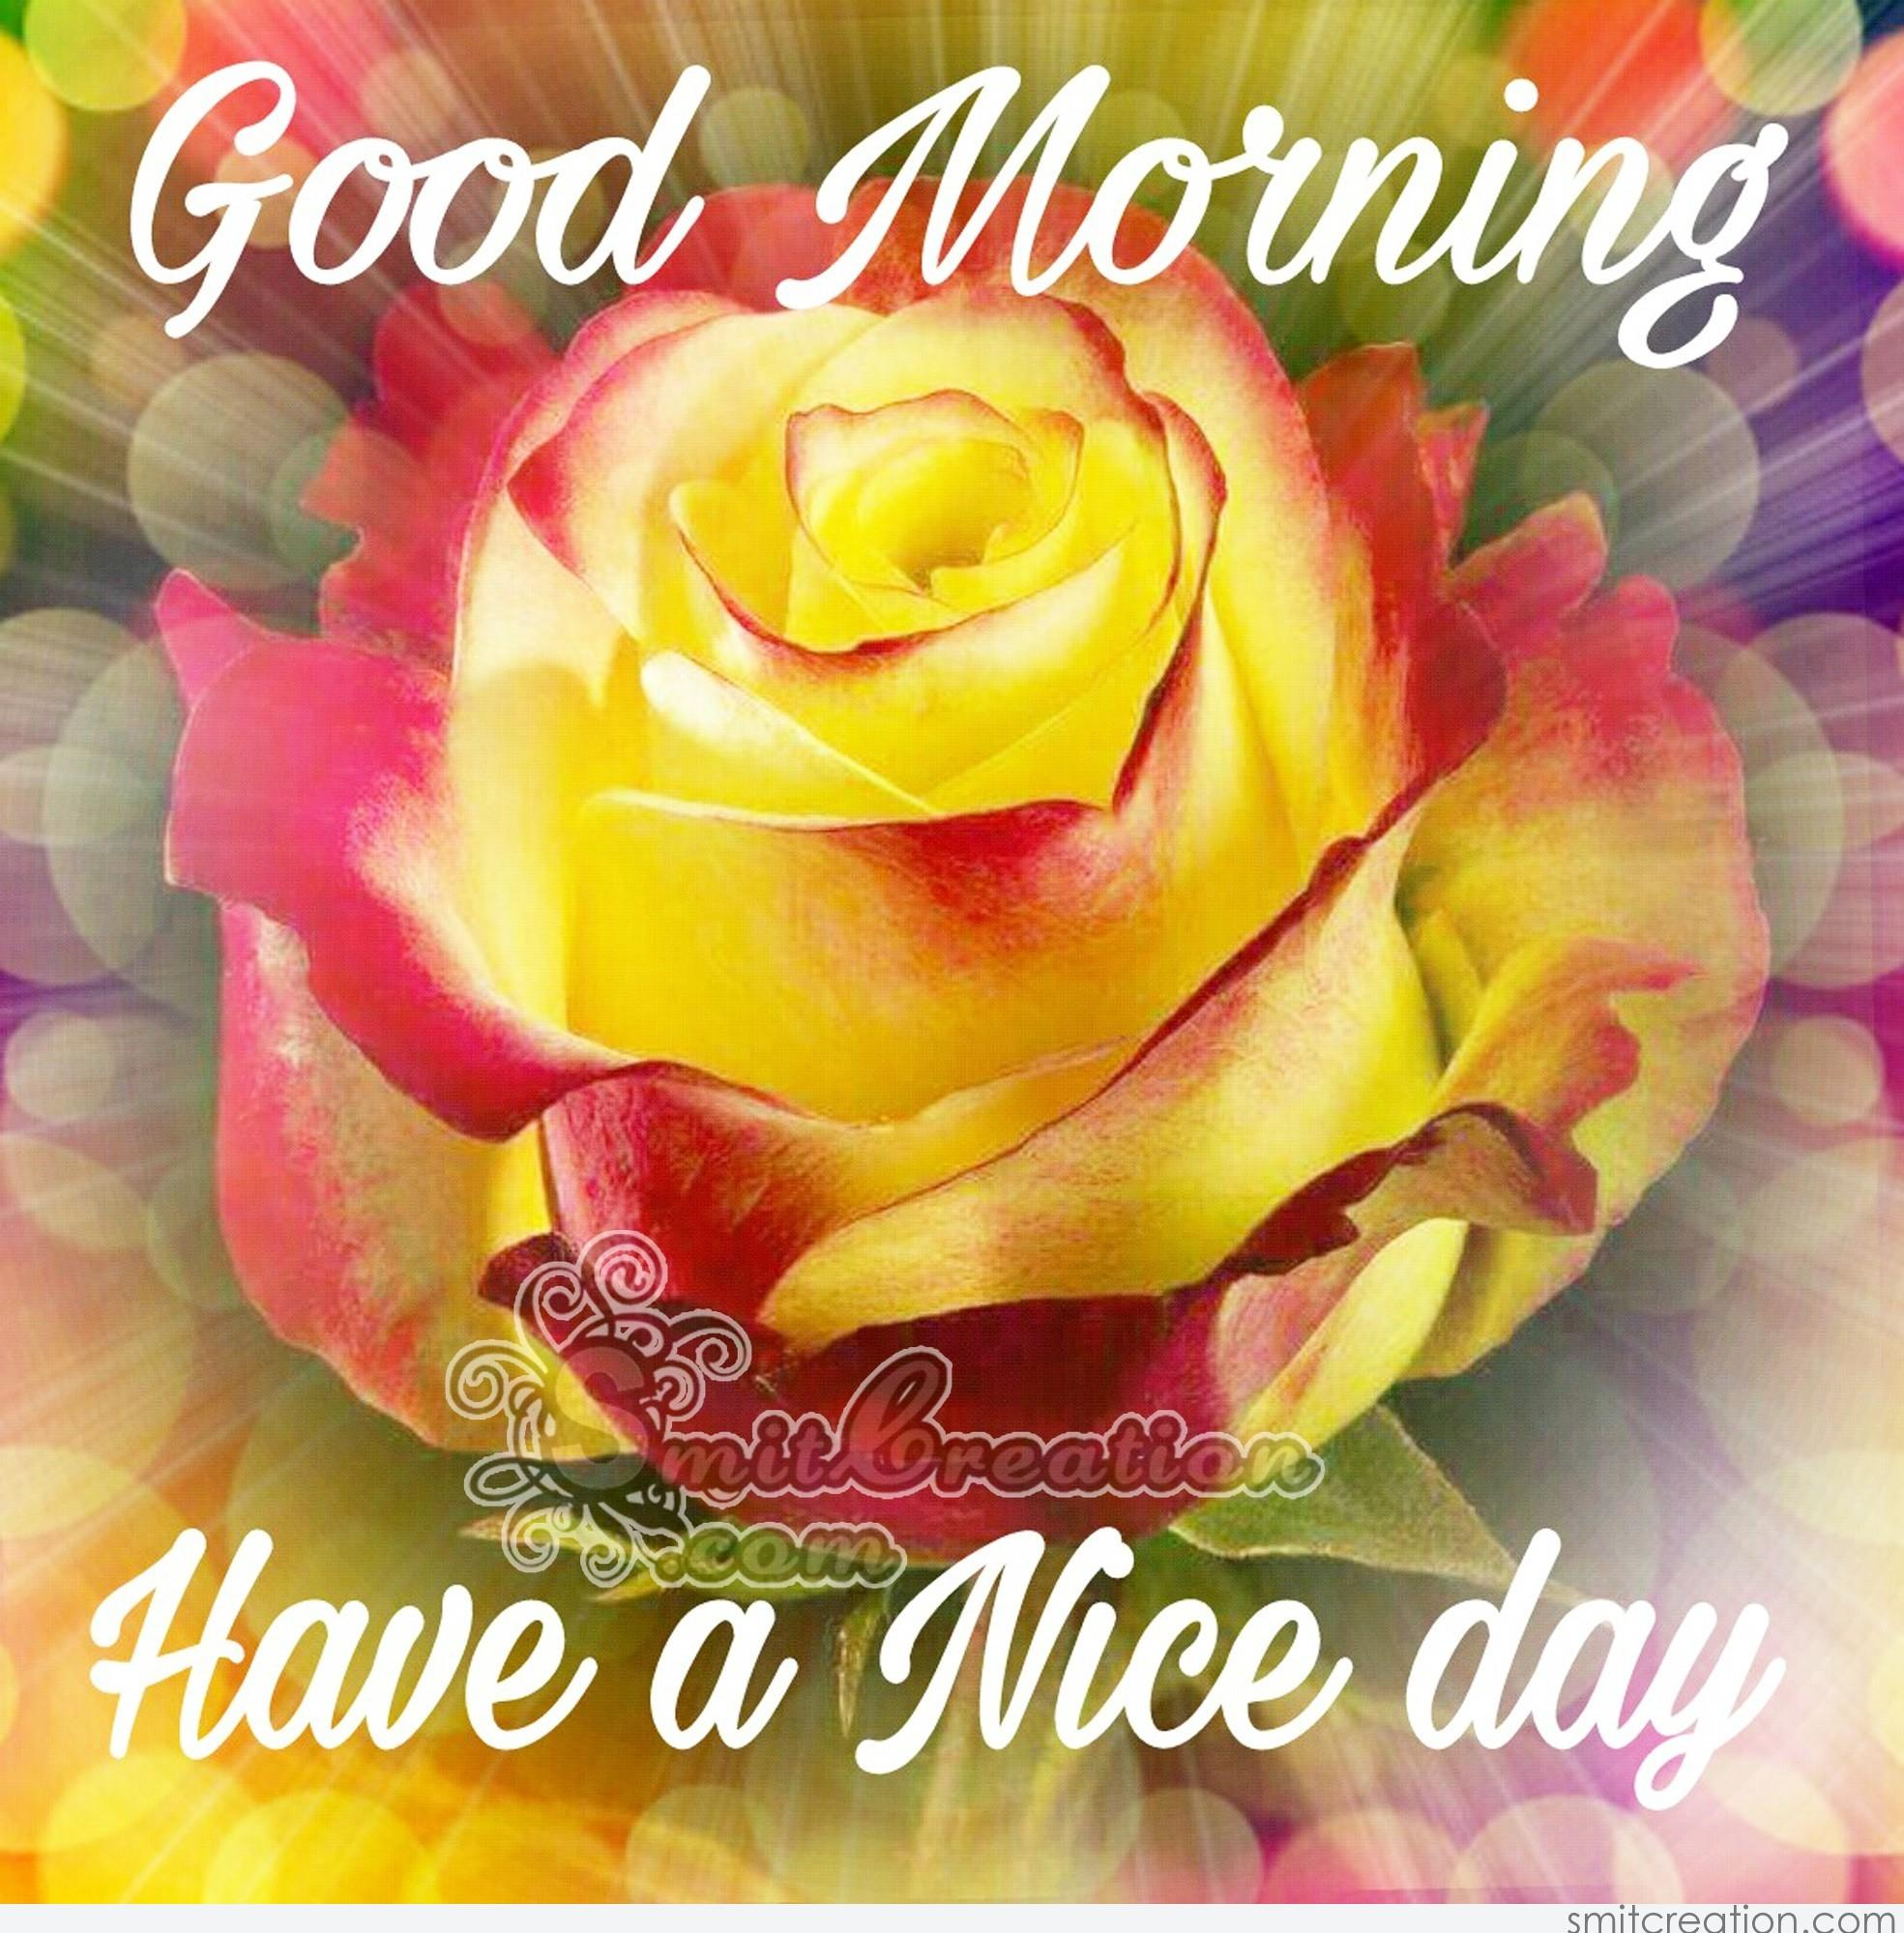 Good Morning Flowers Images : Good morning flowers pictures and graphics smitcreation